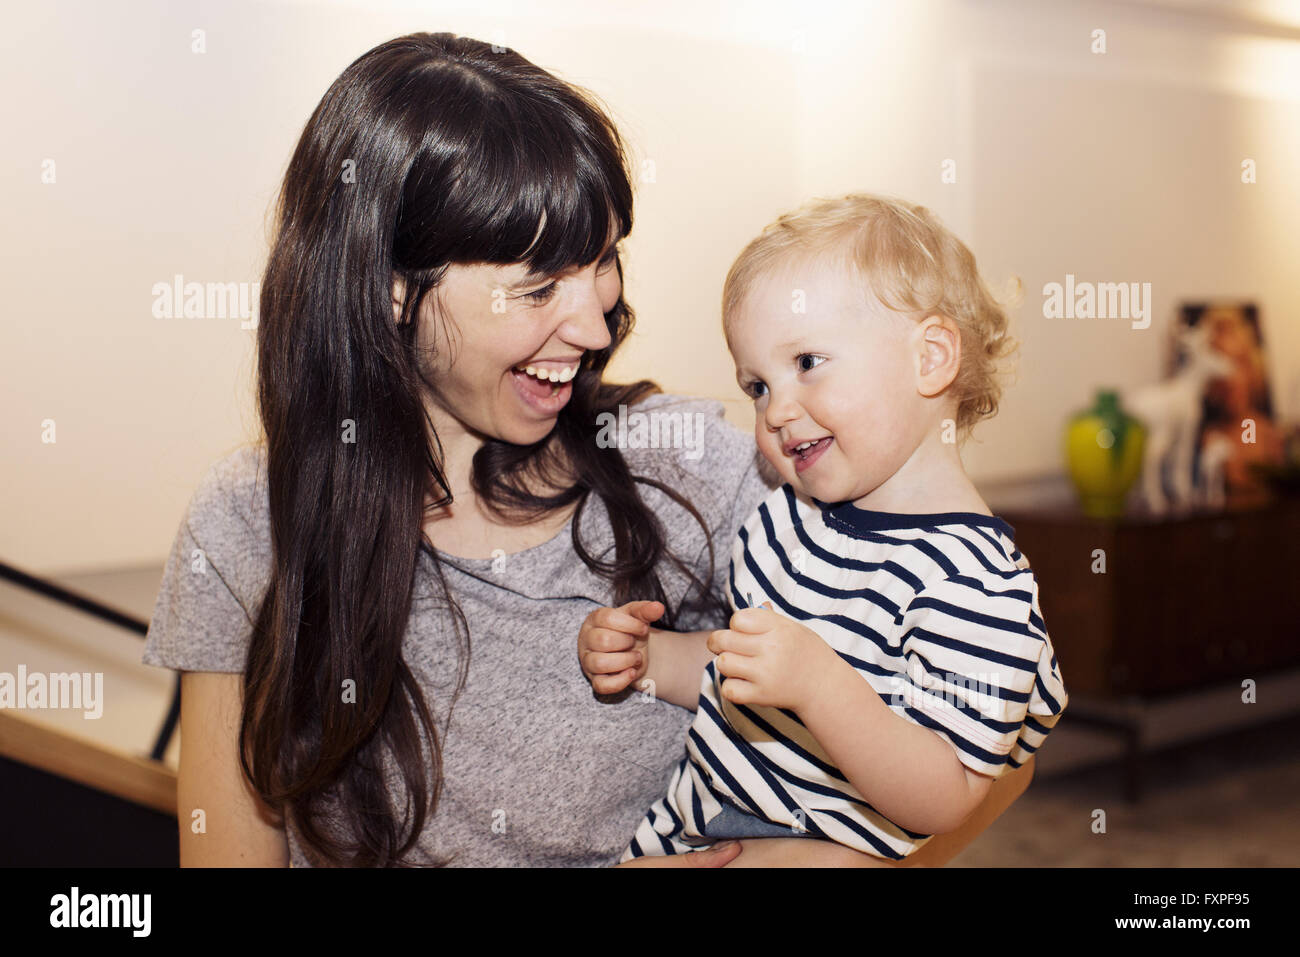 Mother and toddler, portrait - Stock Image